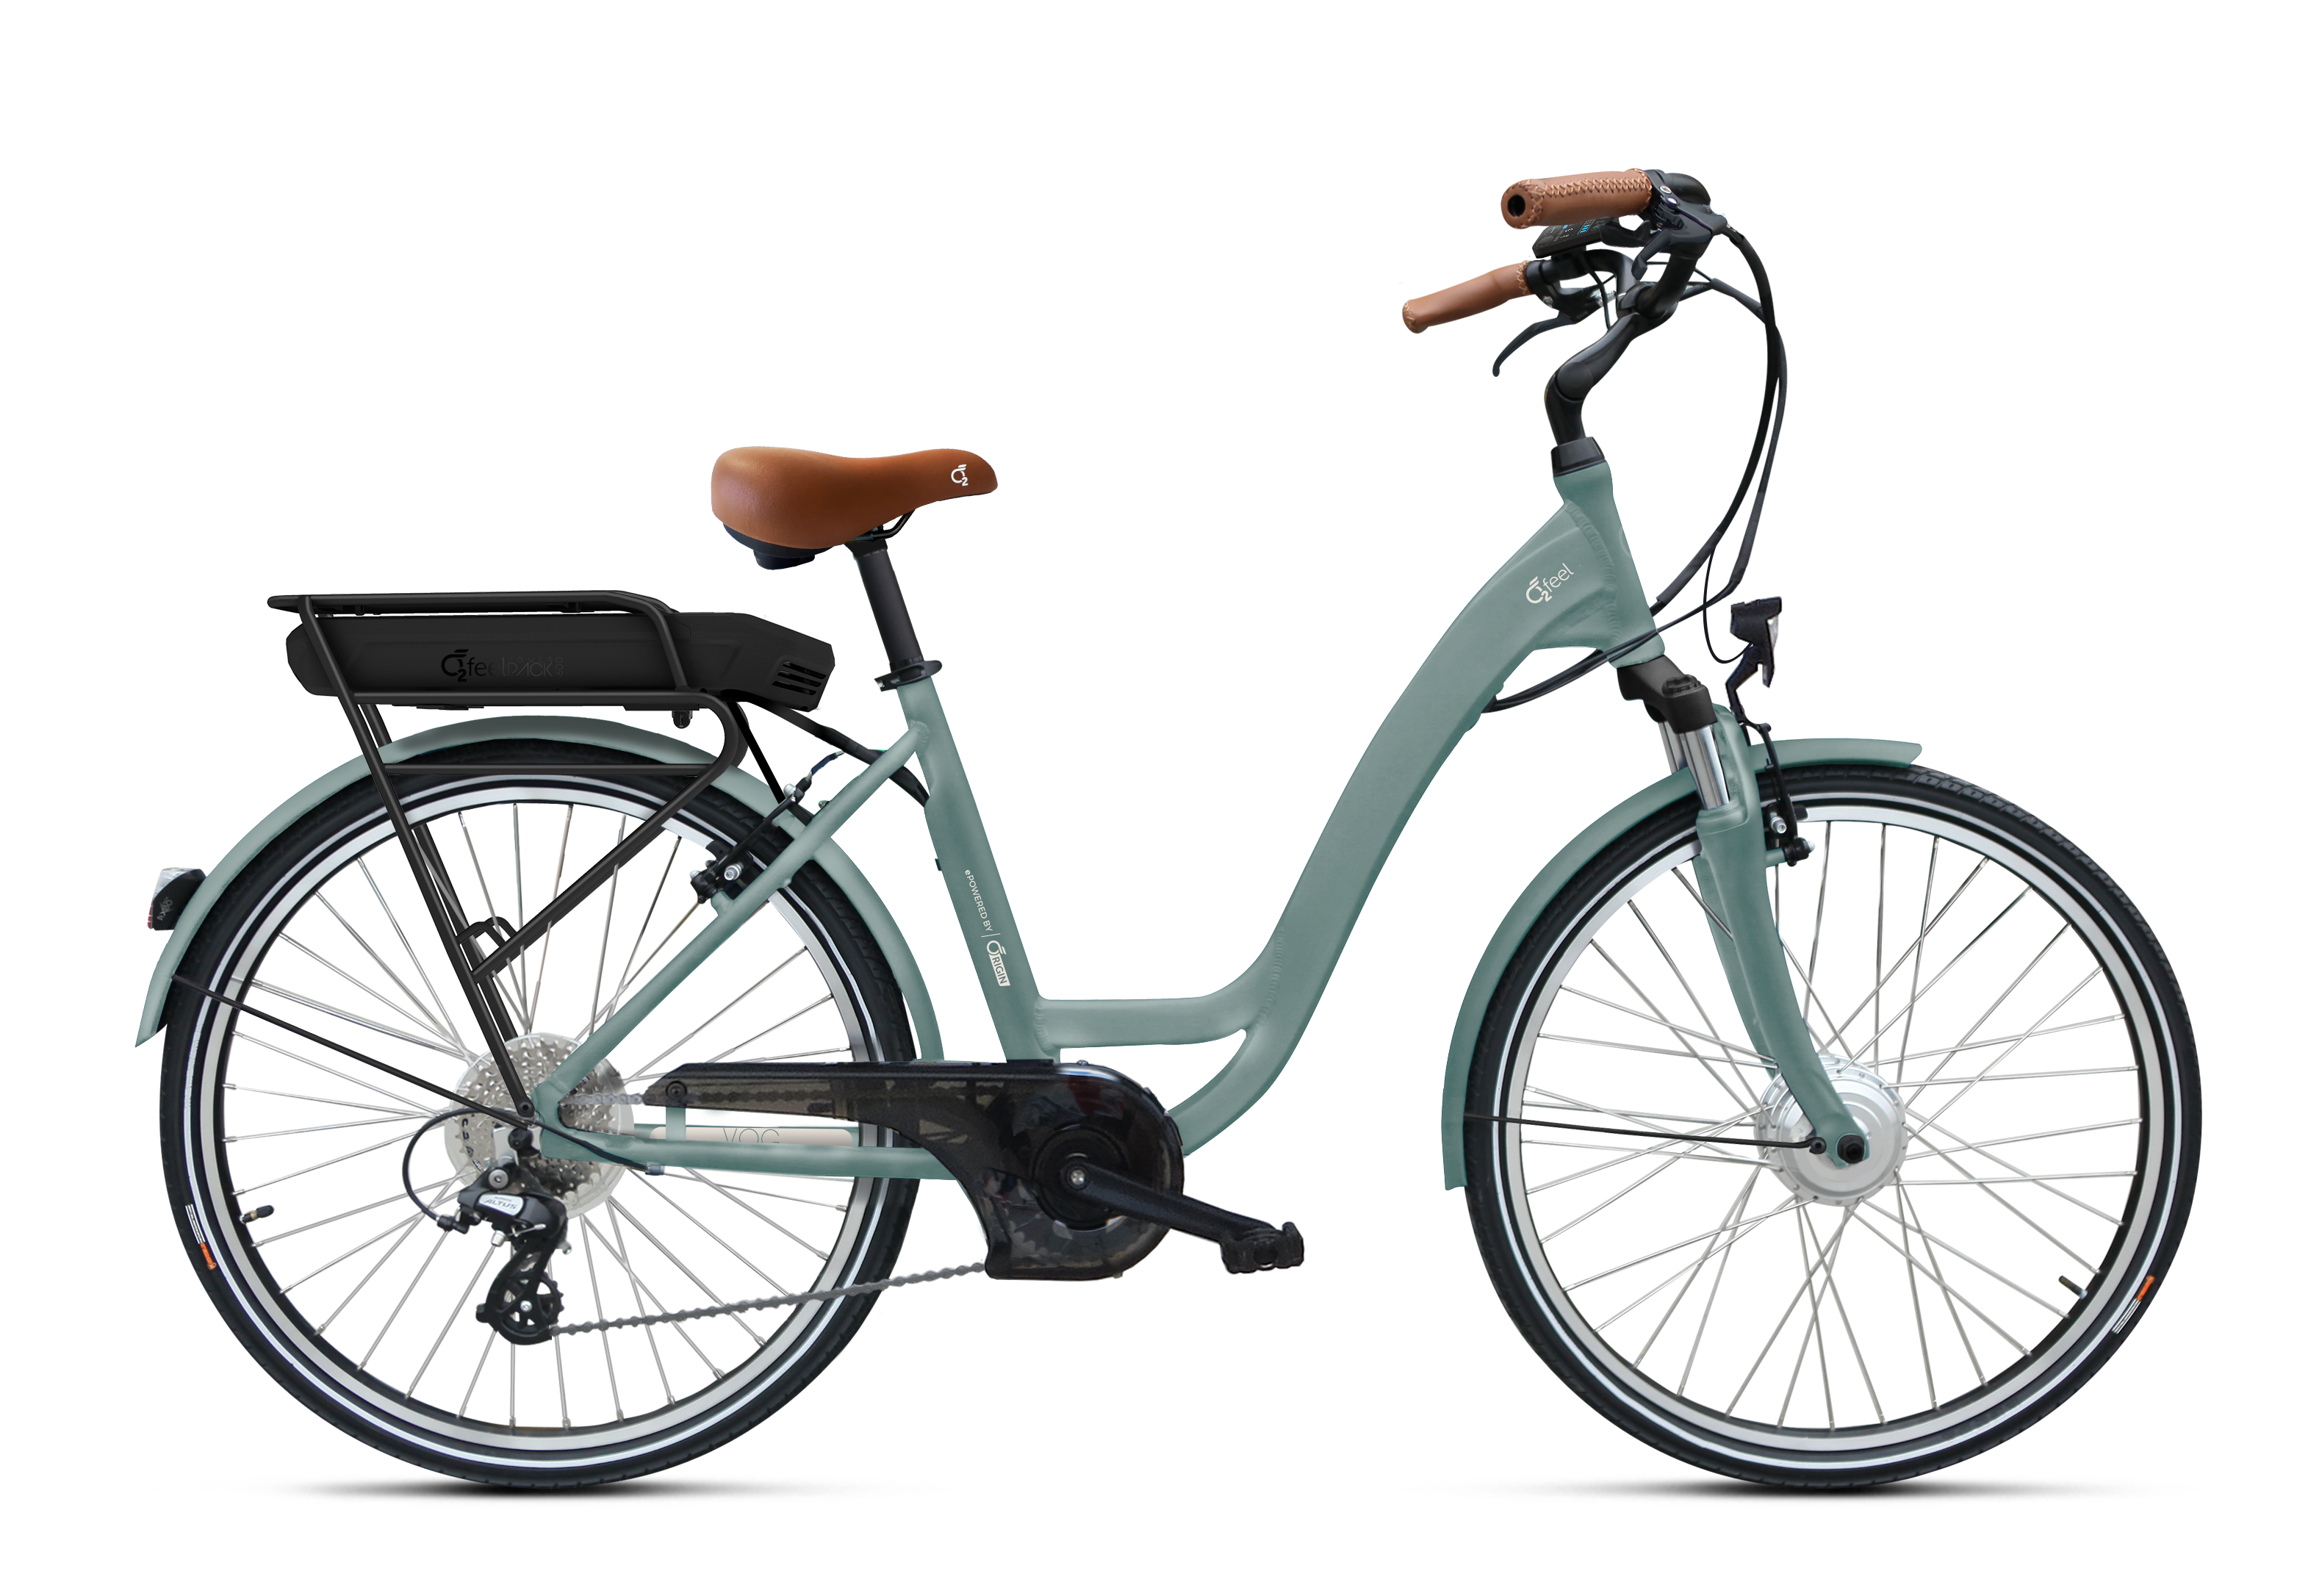 https://w8w5m3f8.stackpathcdn.com/18266/velo-electrique-urbain-vog-od7-400wh.jpg